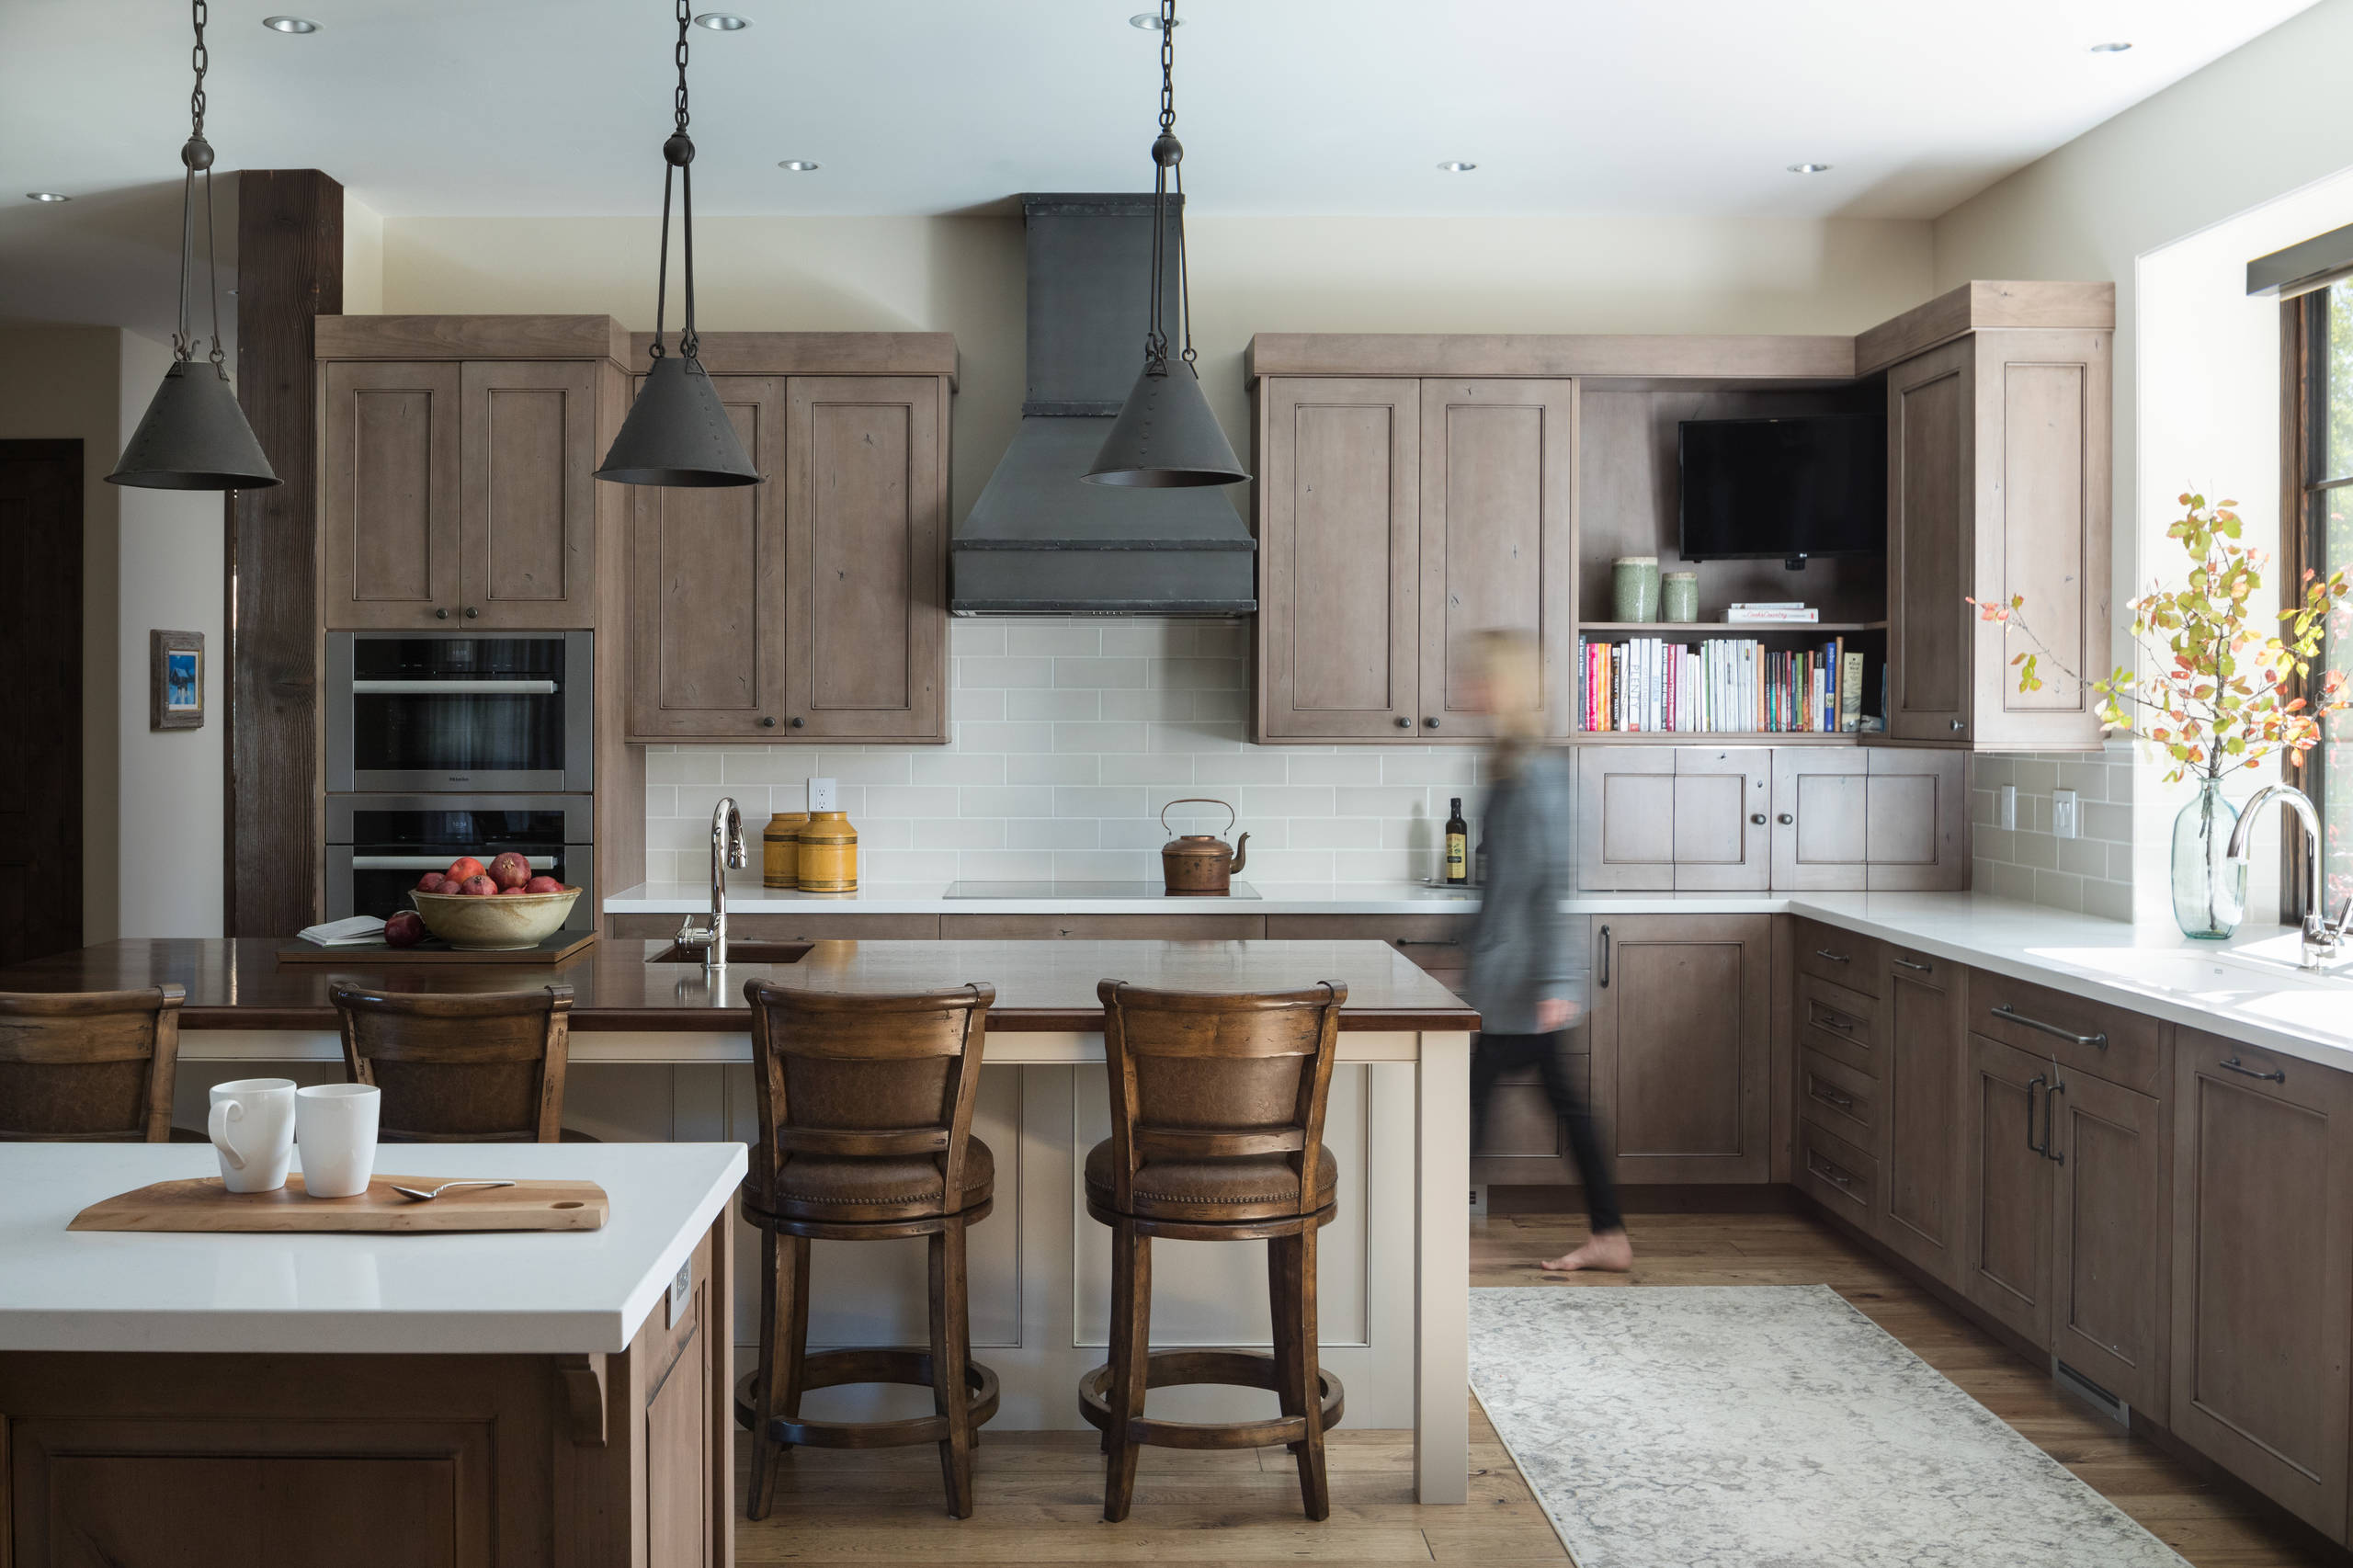 75 Beautiful Kitchen With Brown Cabinets And Gray Backsplash Pictures Ideas December 2020 Houzz